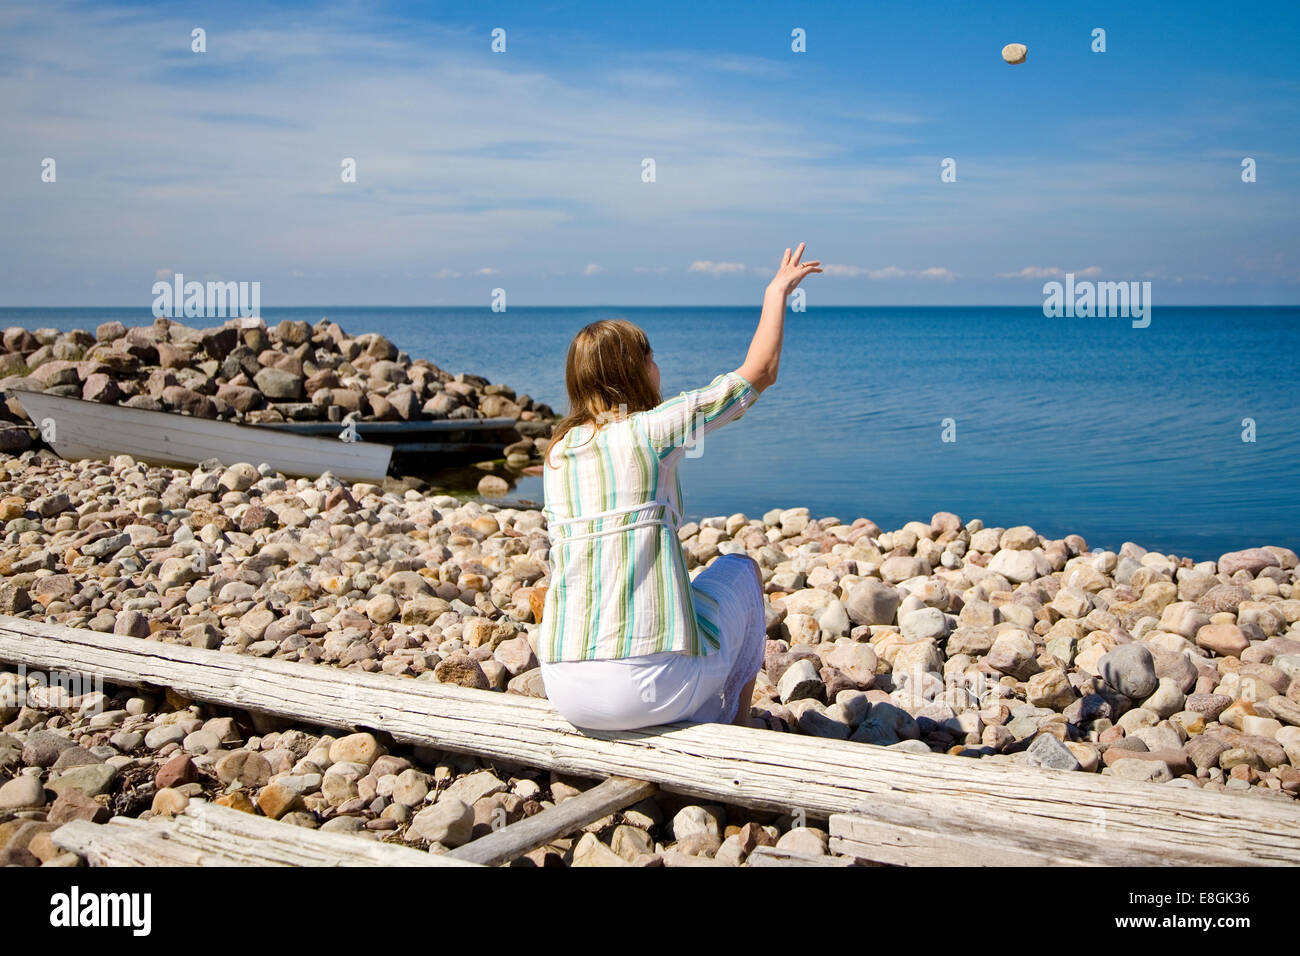 Woman throwing rock on rocky beach - Stock Image